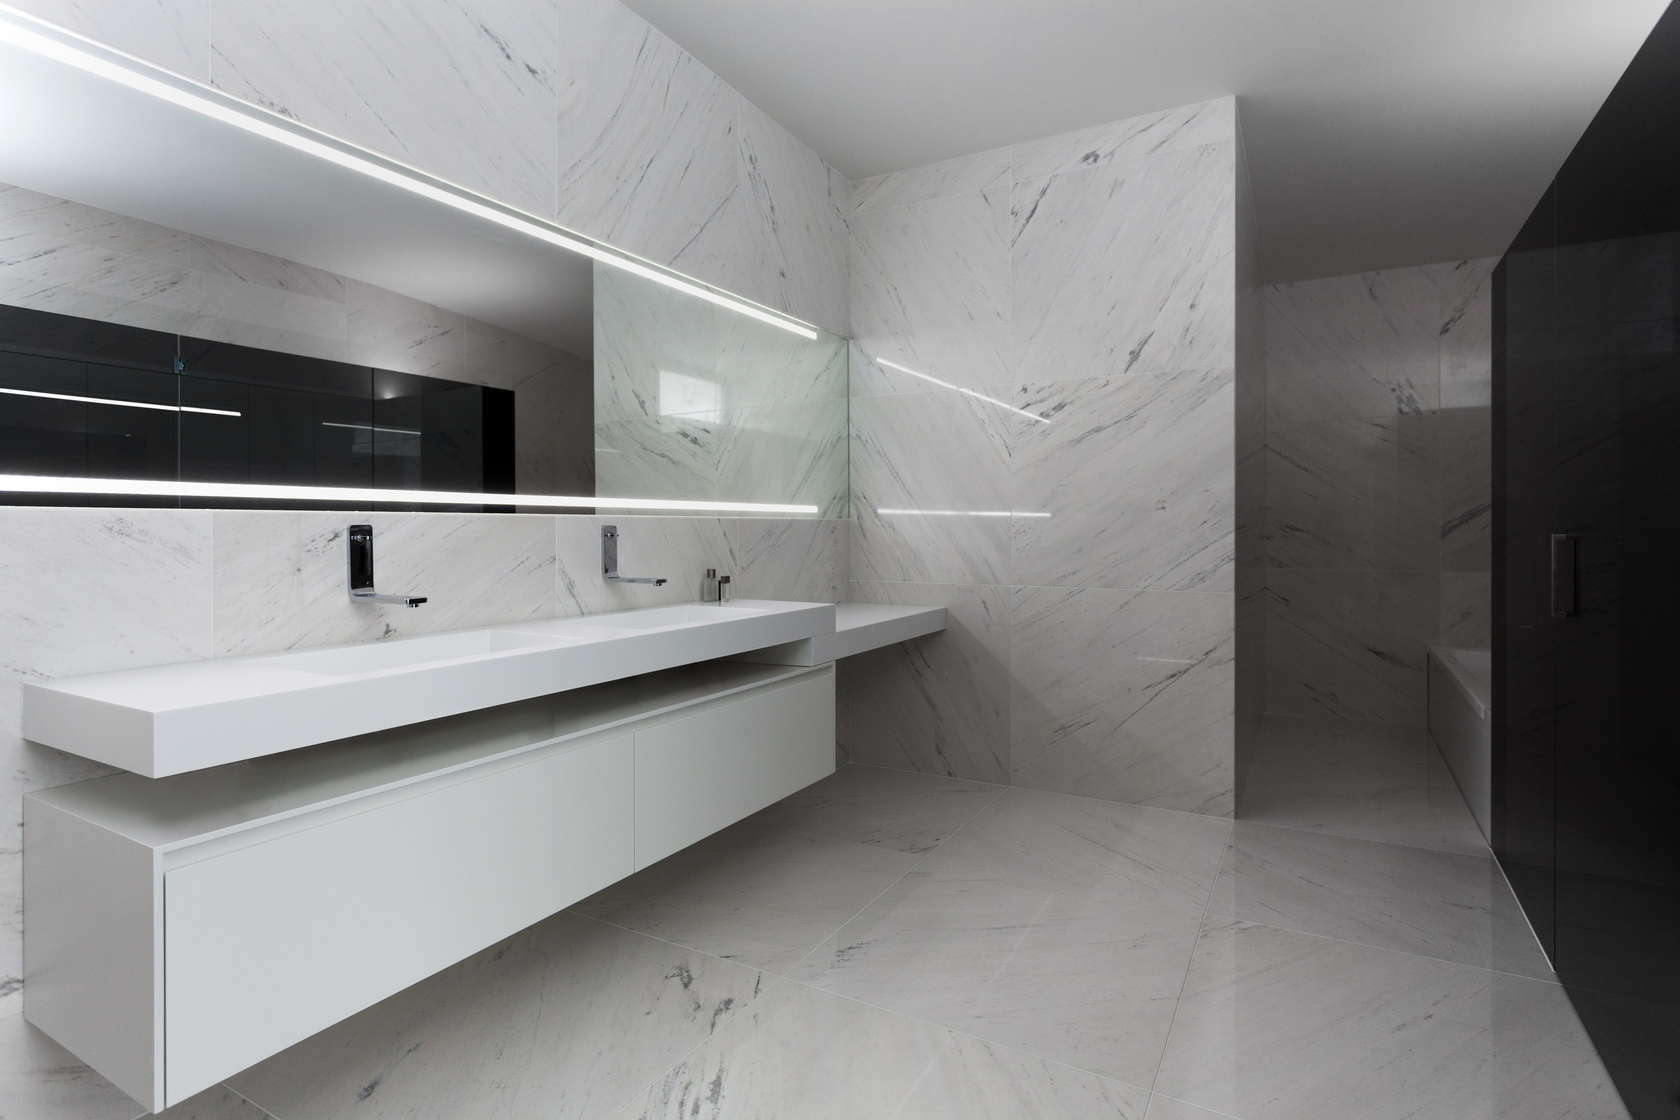 Marble Bathroom Design - Golf course views and a striking exterior make for a modern marvel